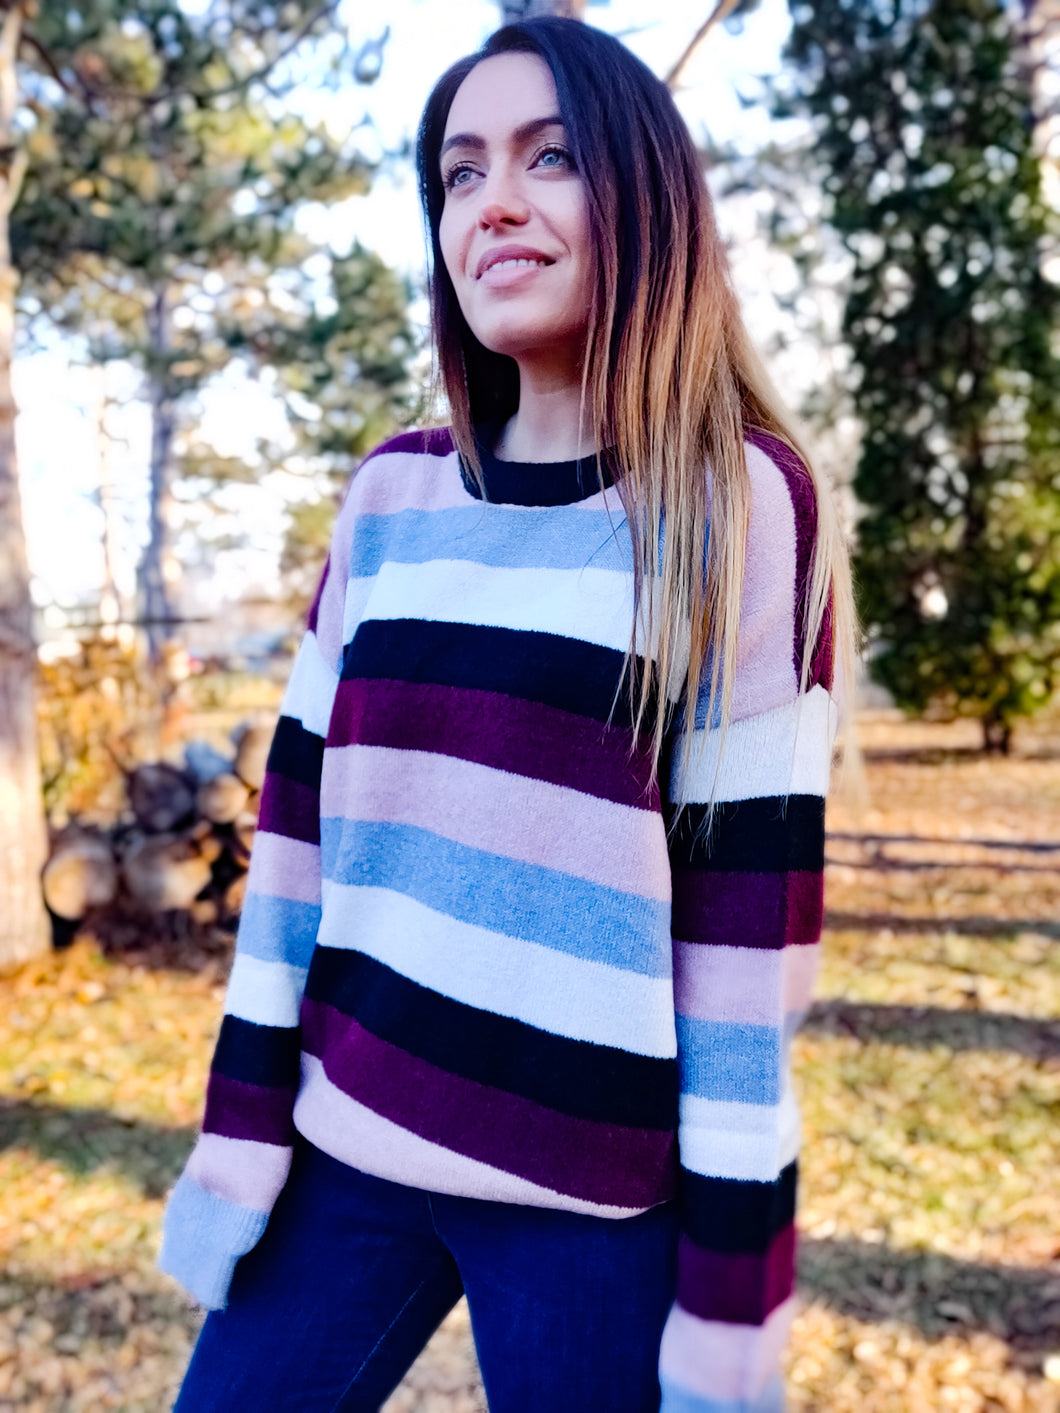 Plush Striped Sweater - Wanderer Traveling Boutique